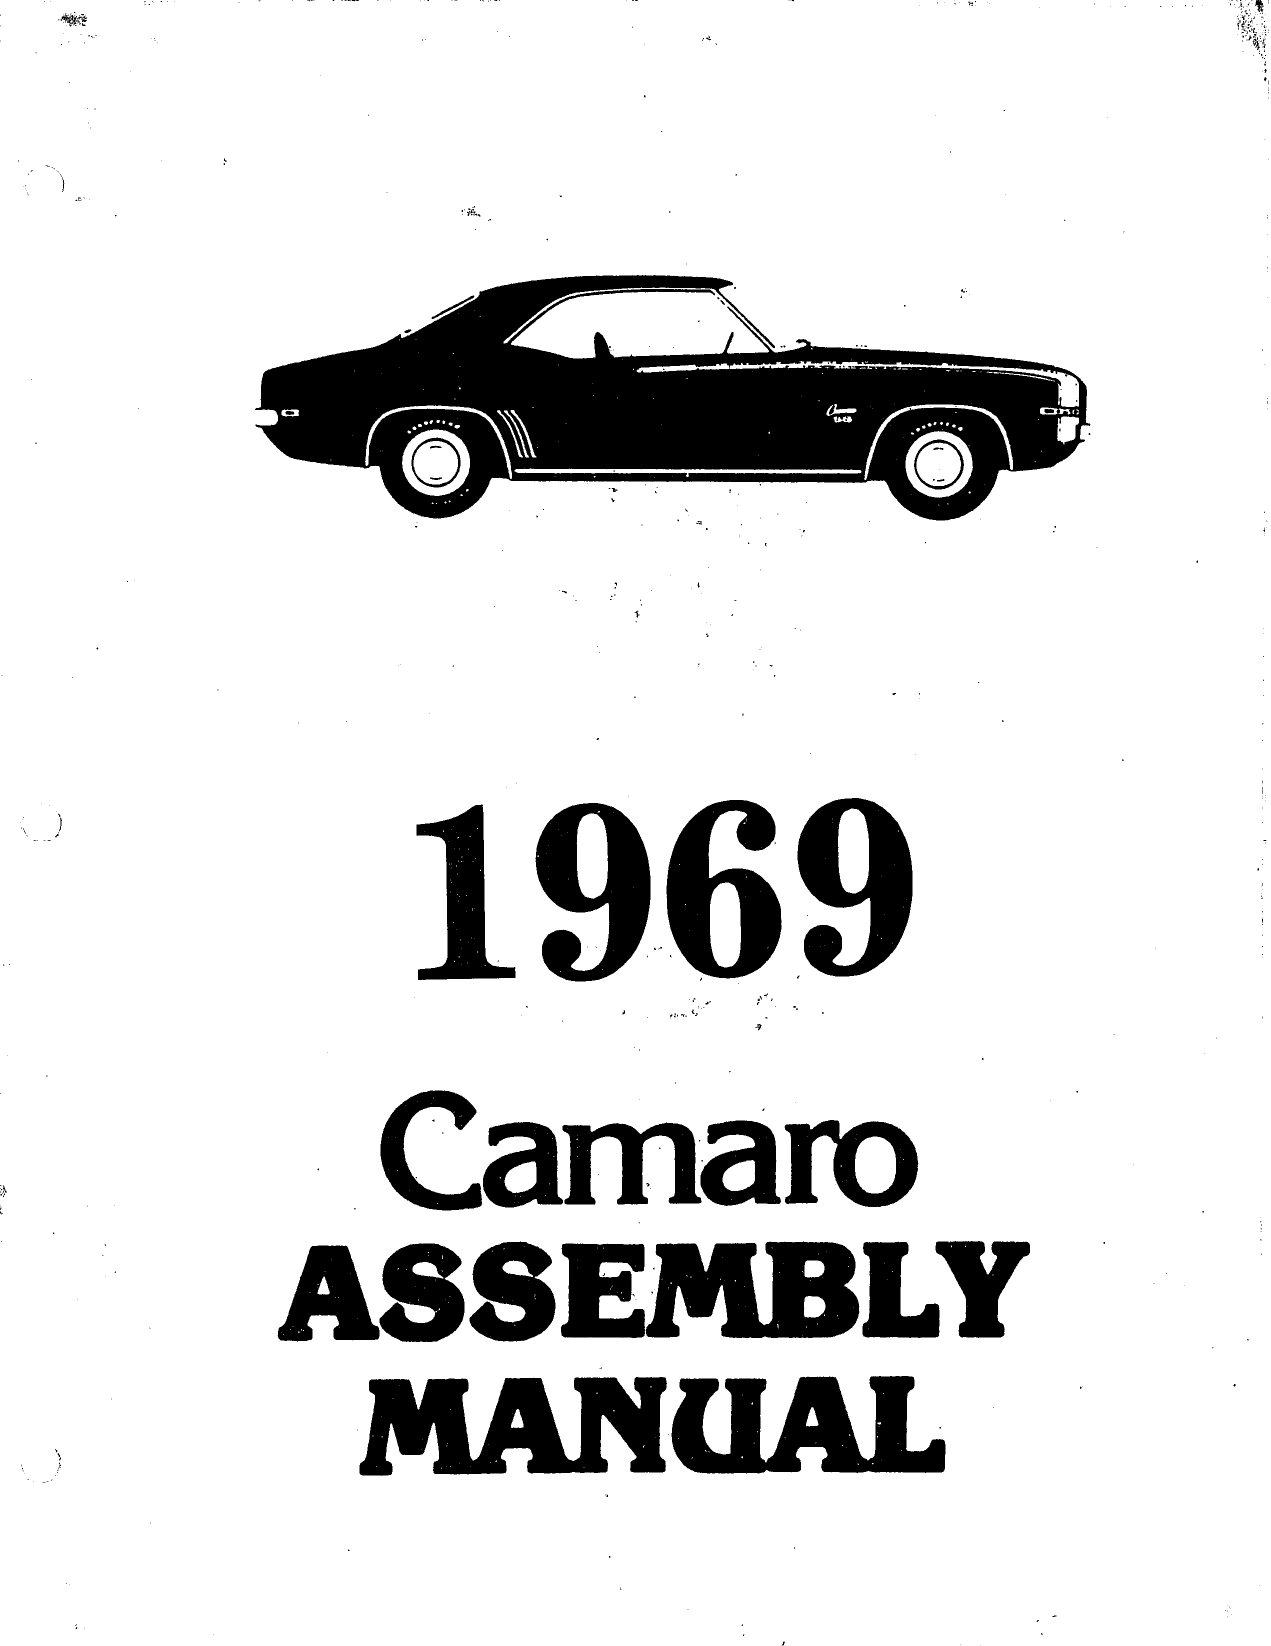 Camaro Assembly Manual April 1968